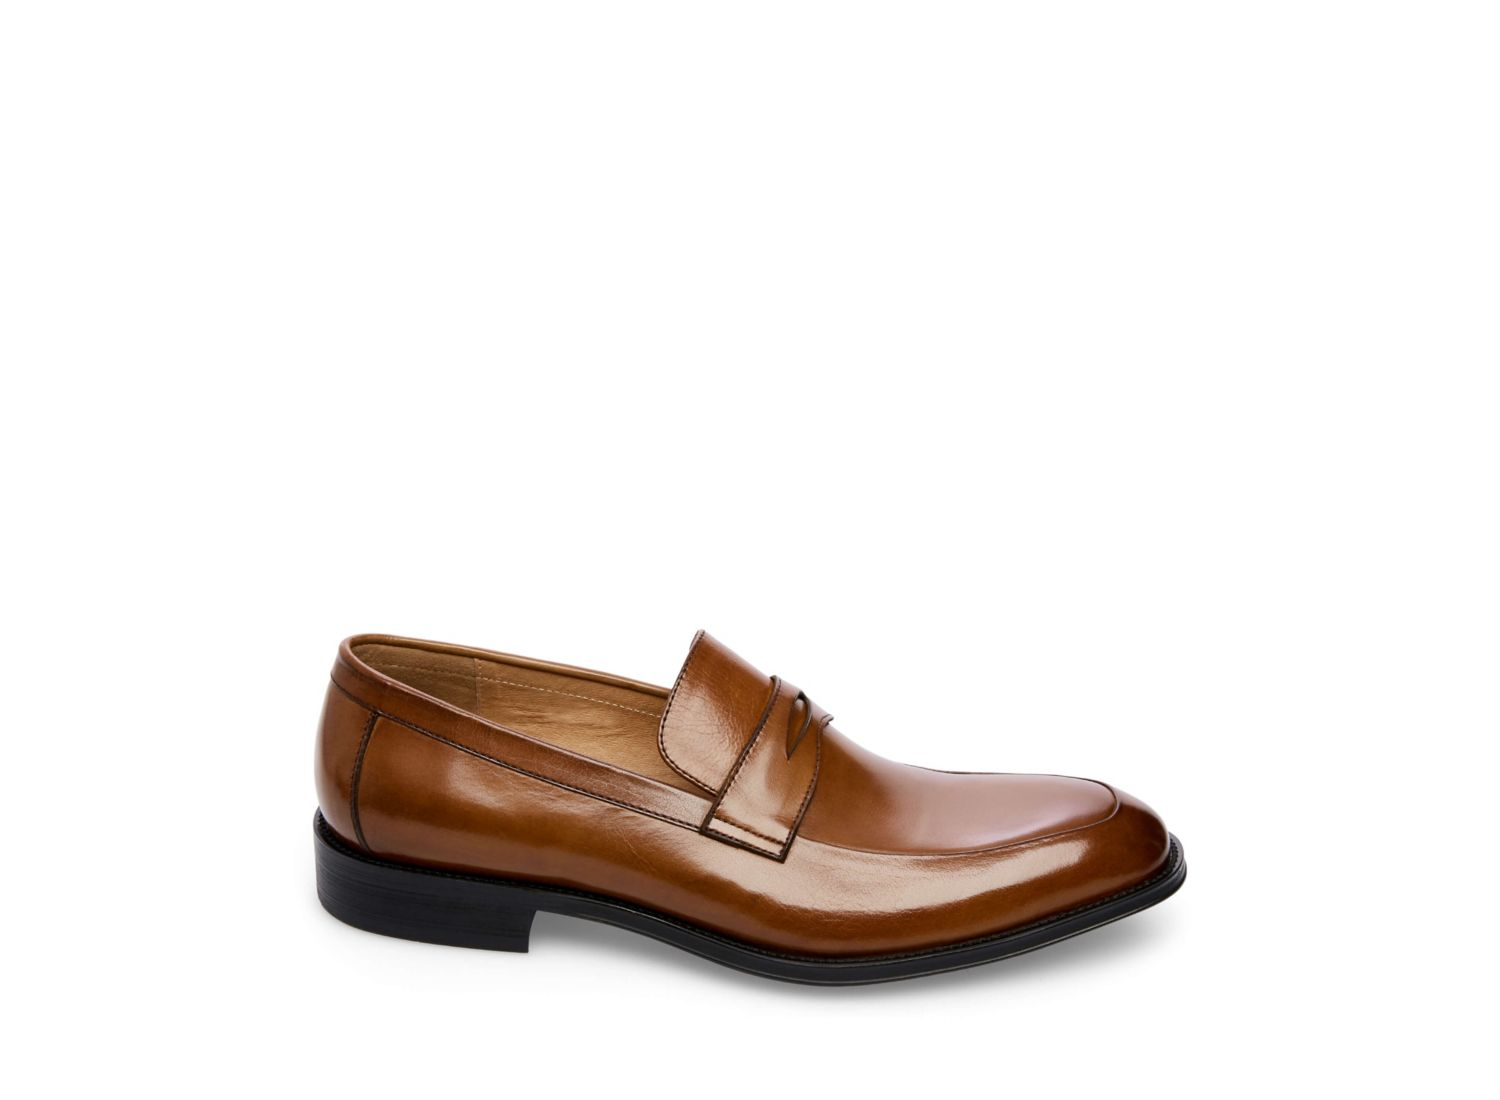 HOFFMAN TAN LEATHER - Steve Madden